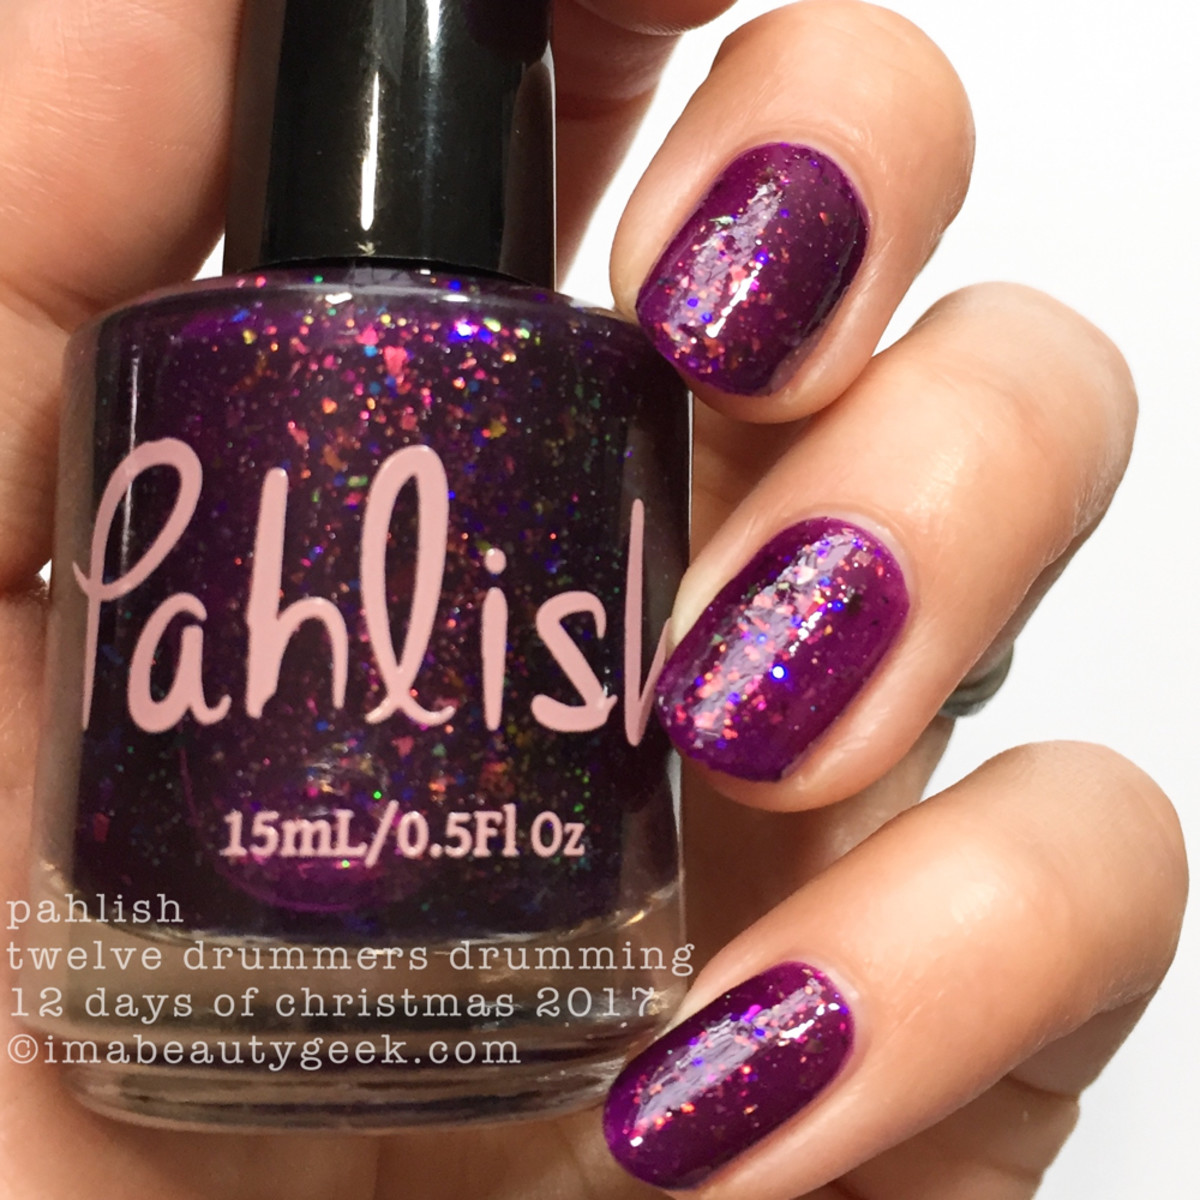 Pahlish Twelve Drummers Drumming - Pahlish 12 Days of Christmas 2017 2